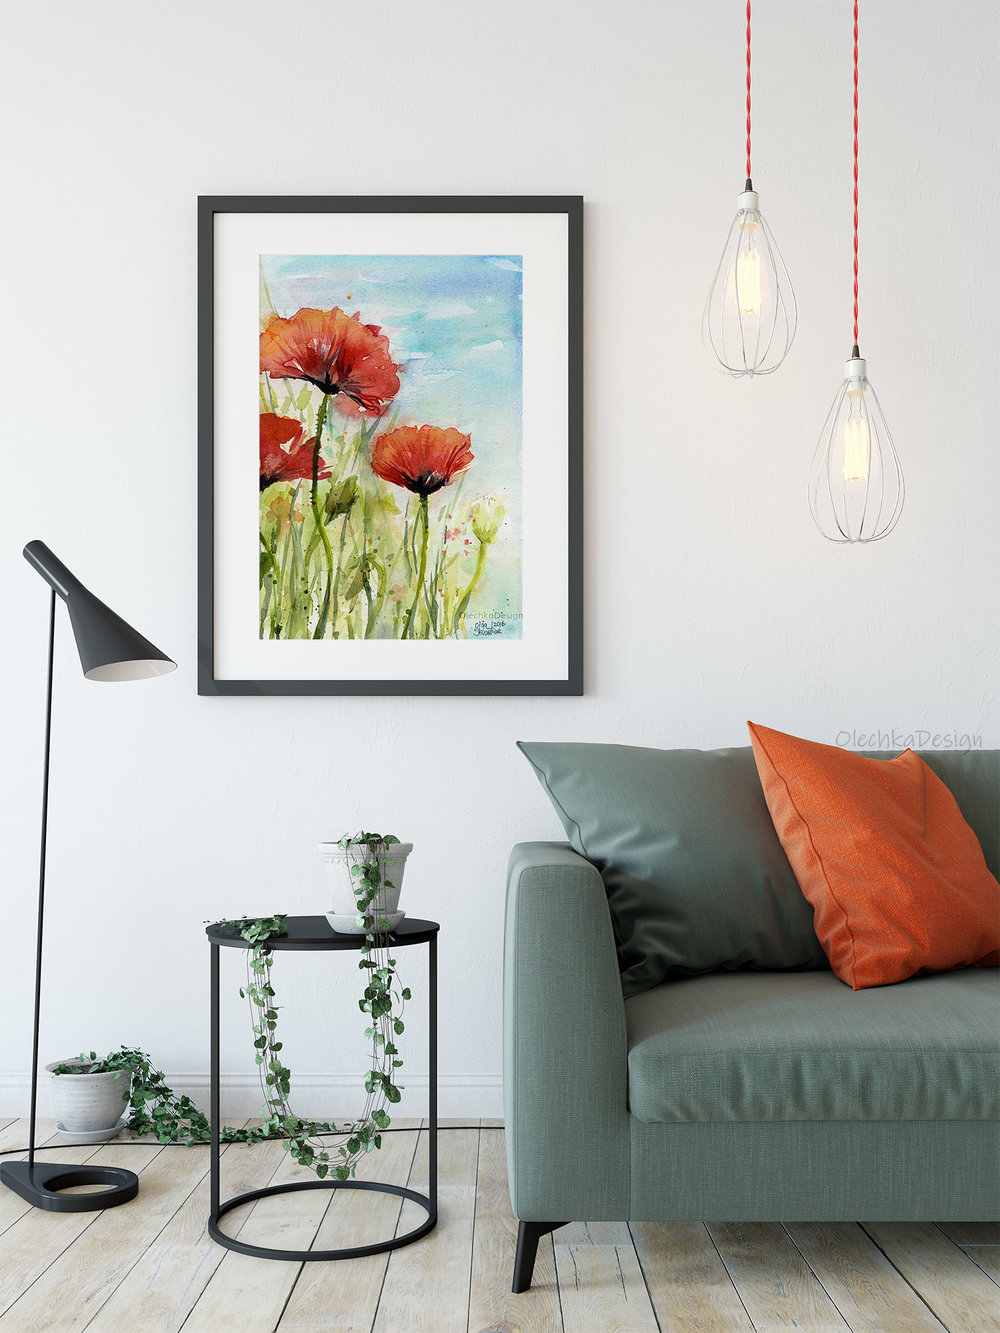 poppies-watercolor-art.jpg